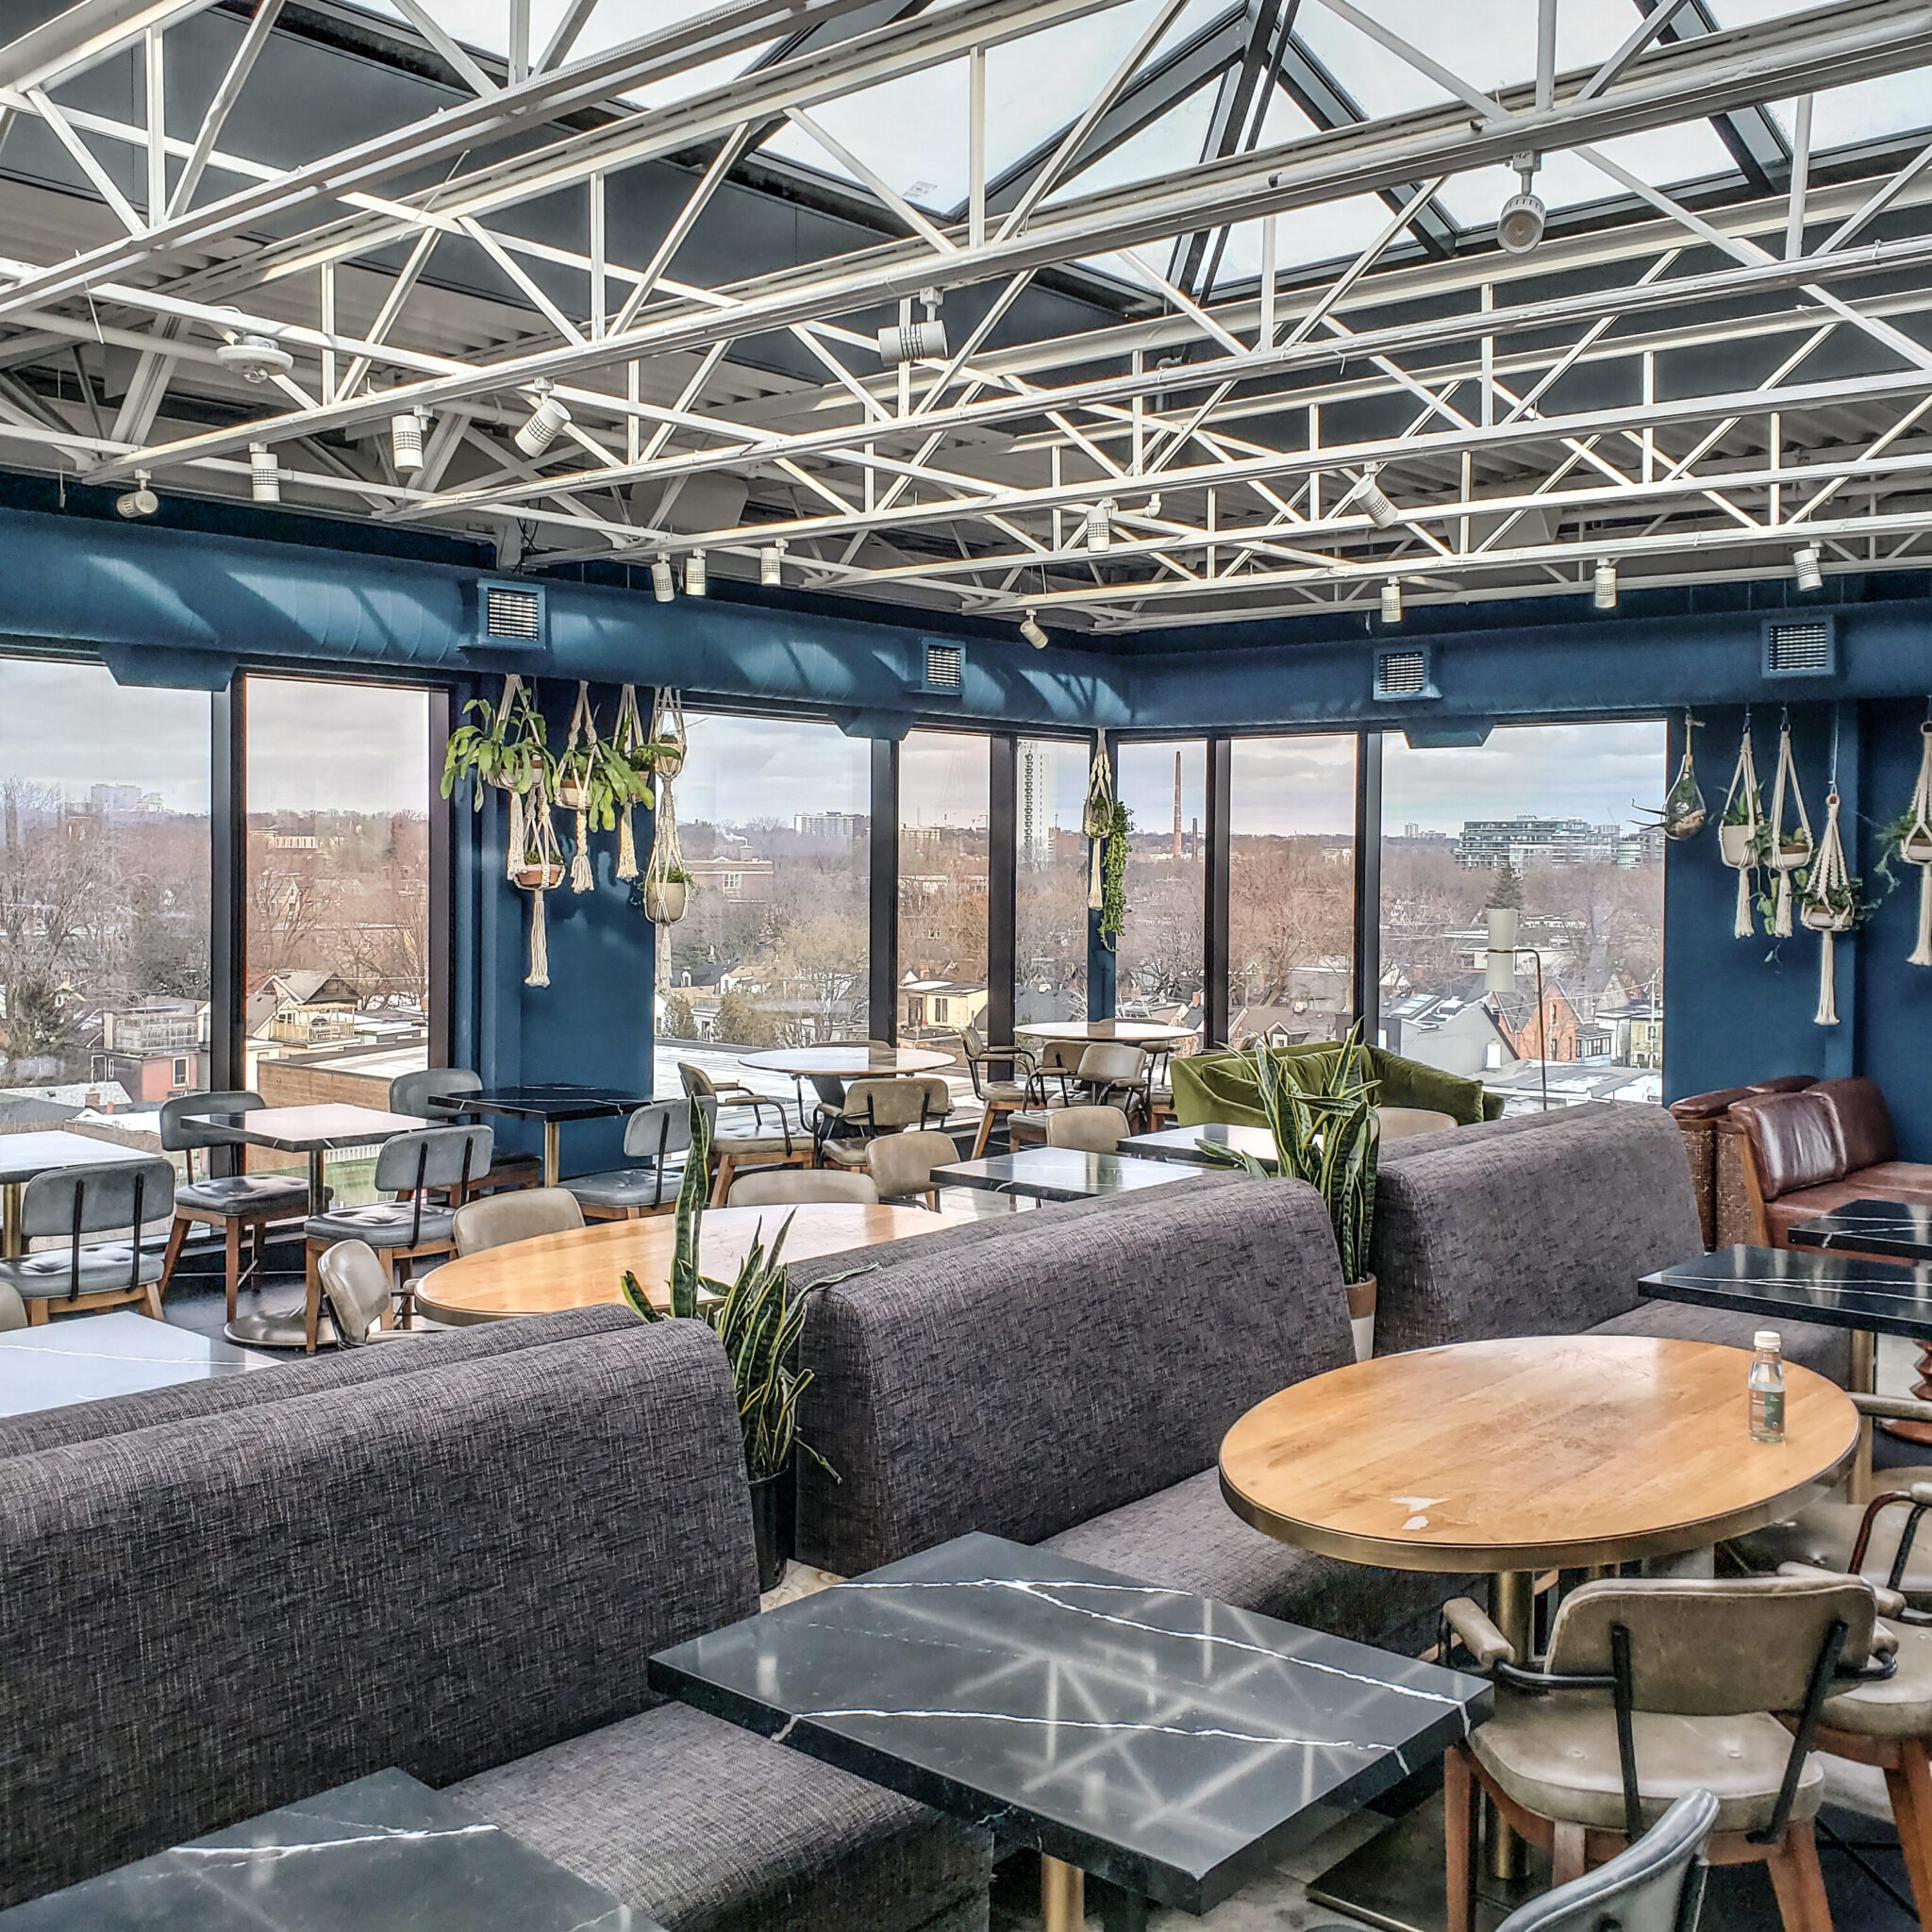 The Broadview Hotel - Broadview Hotel - Queen East - Toronto East - Toronto Life - Boutique Hotel - Rooftop Bar